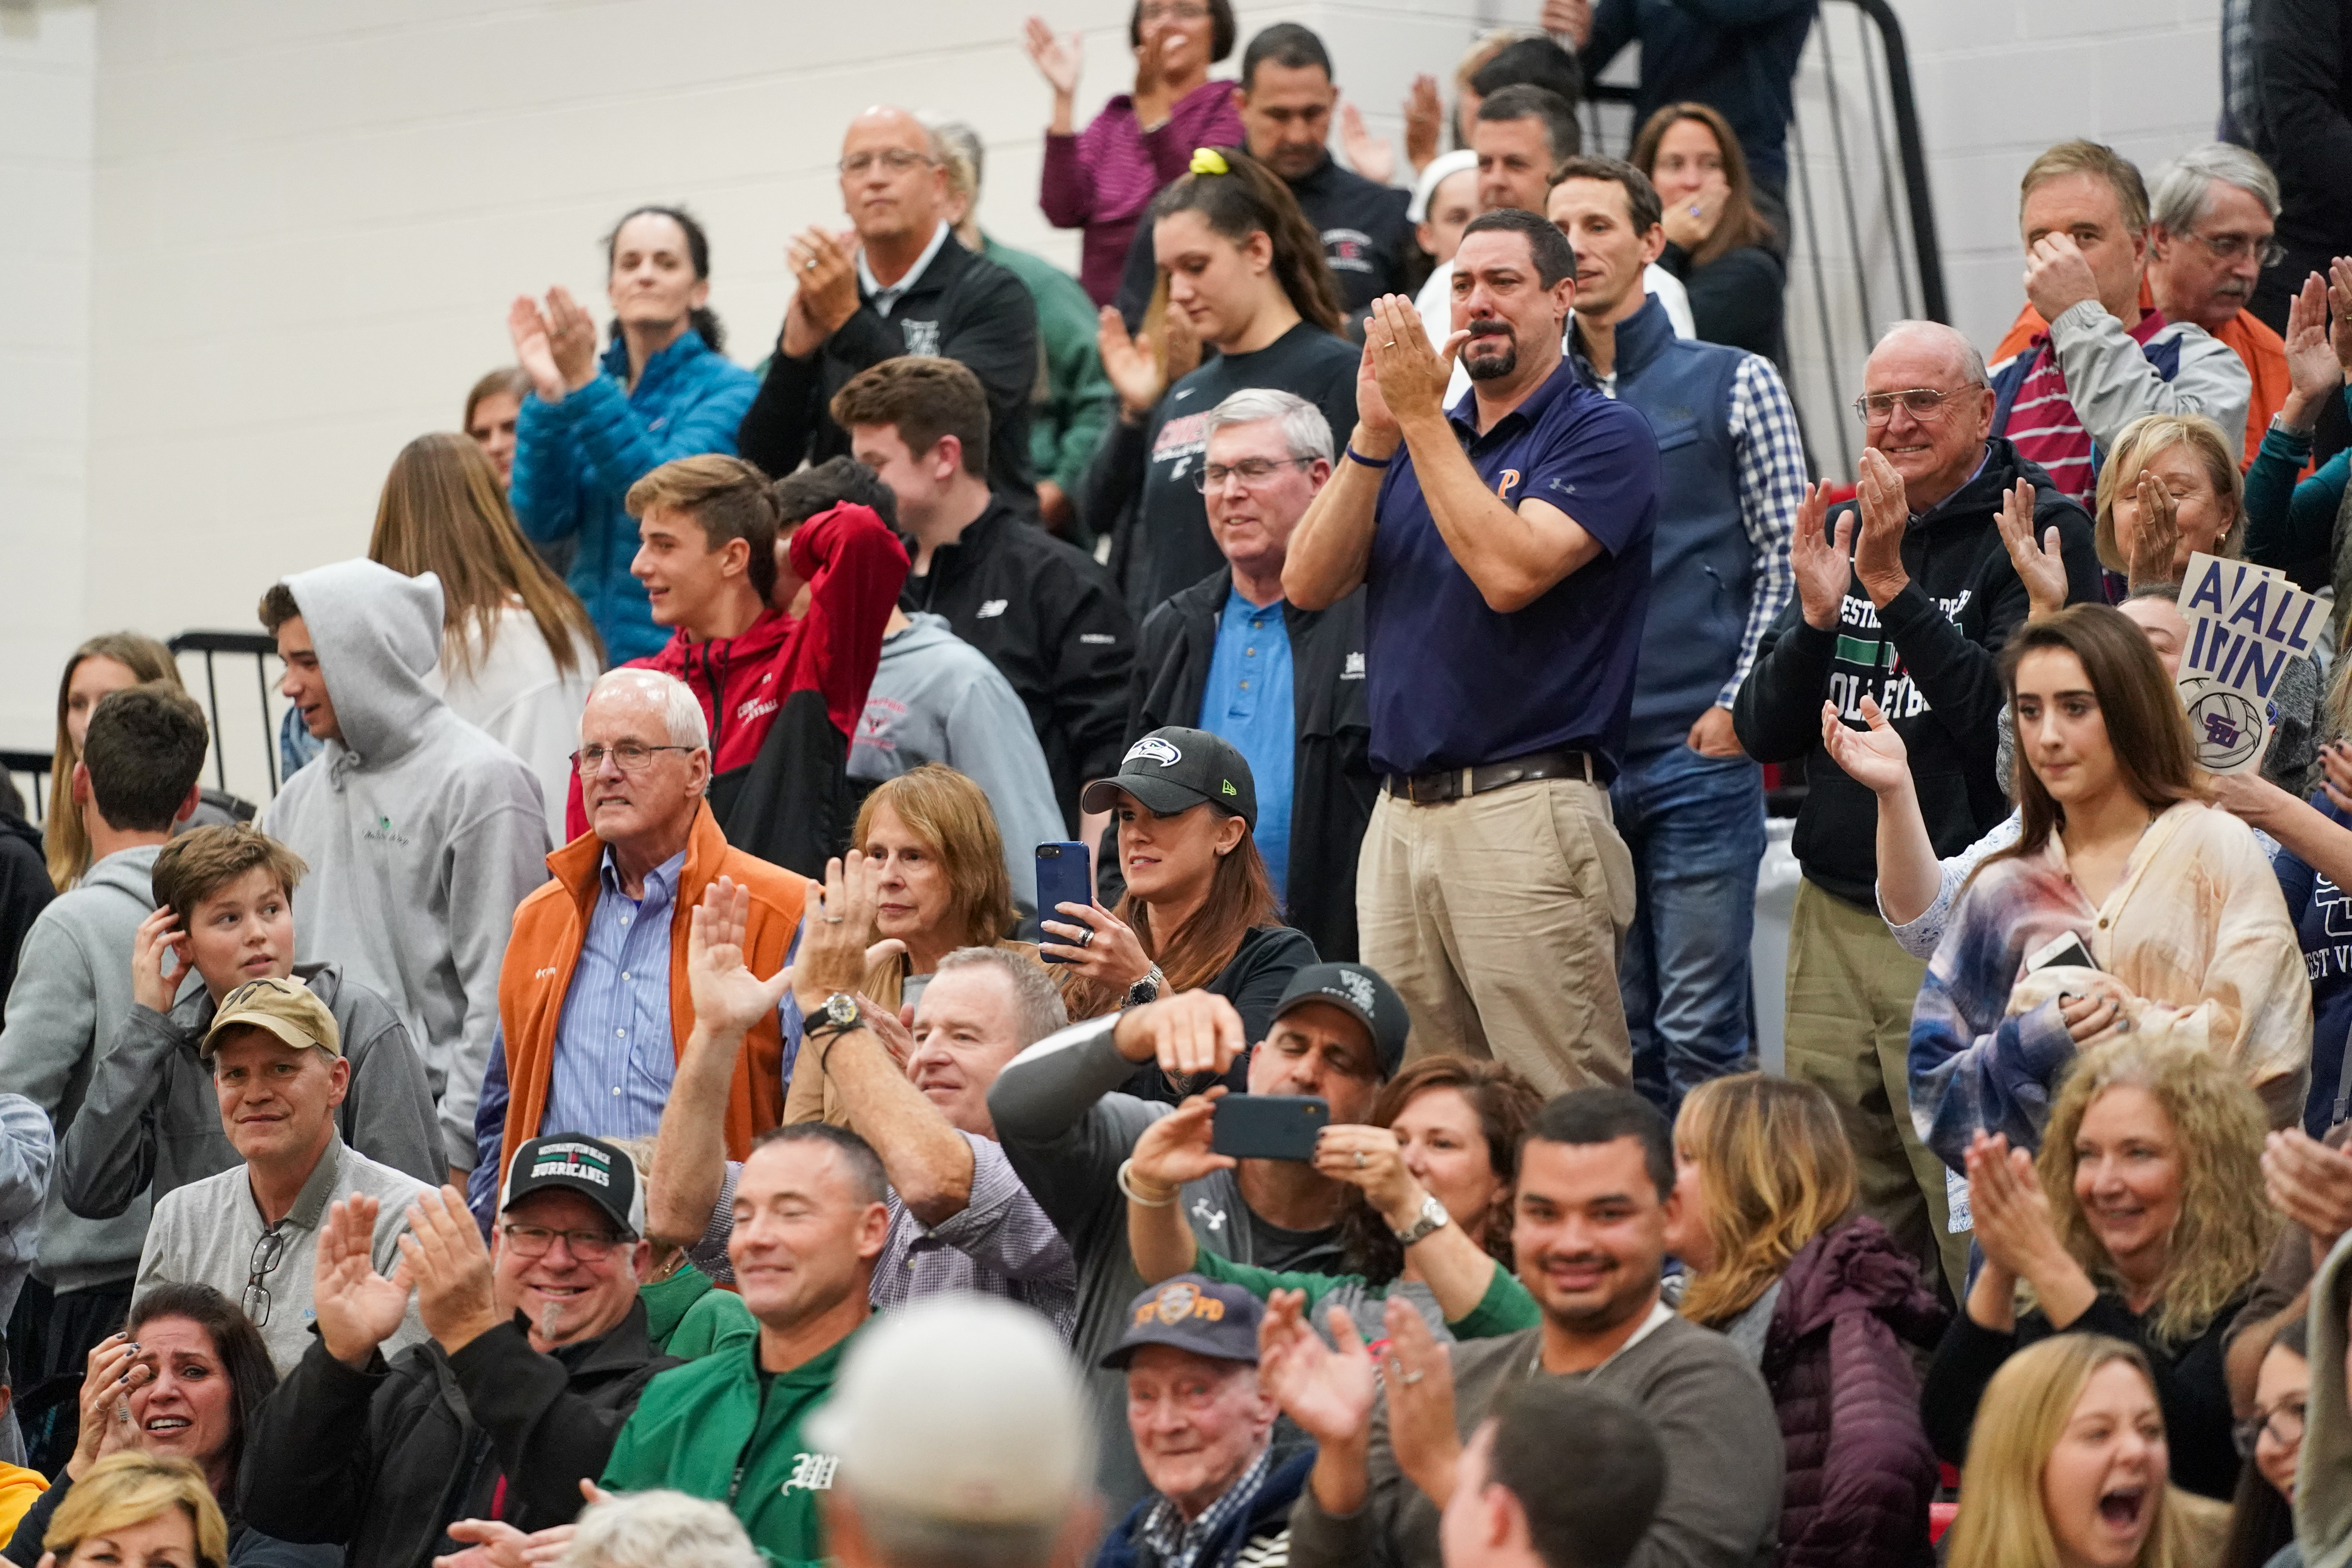 The Westhampton Beach community made the drive to Selden on Monday evening to see history be made.